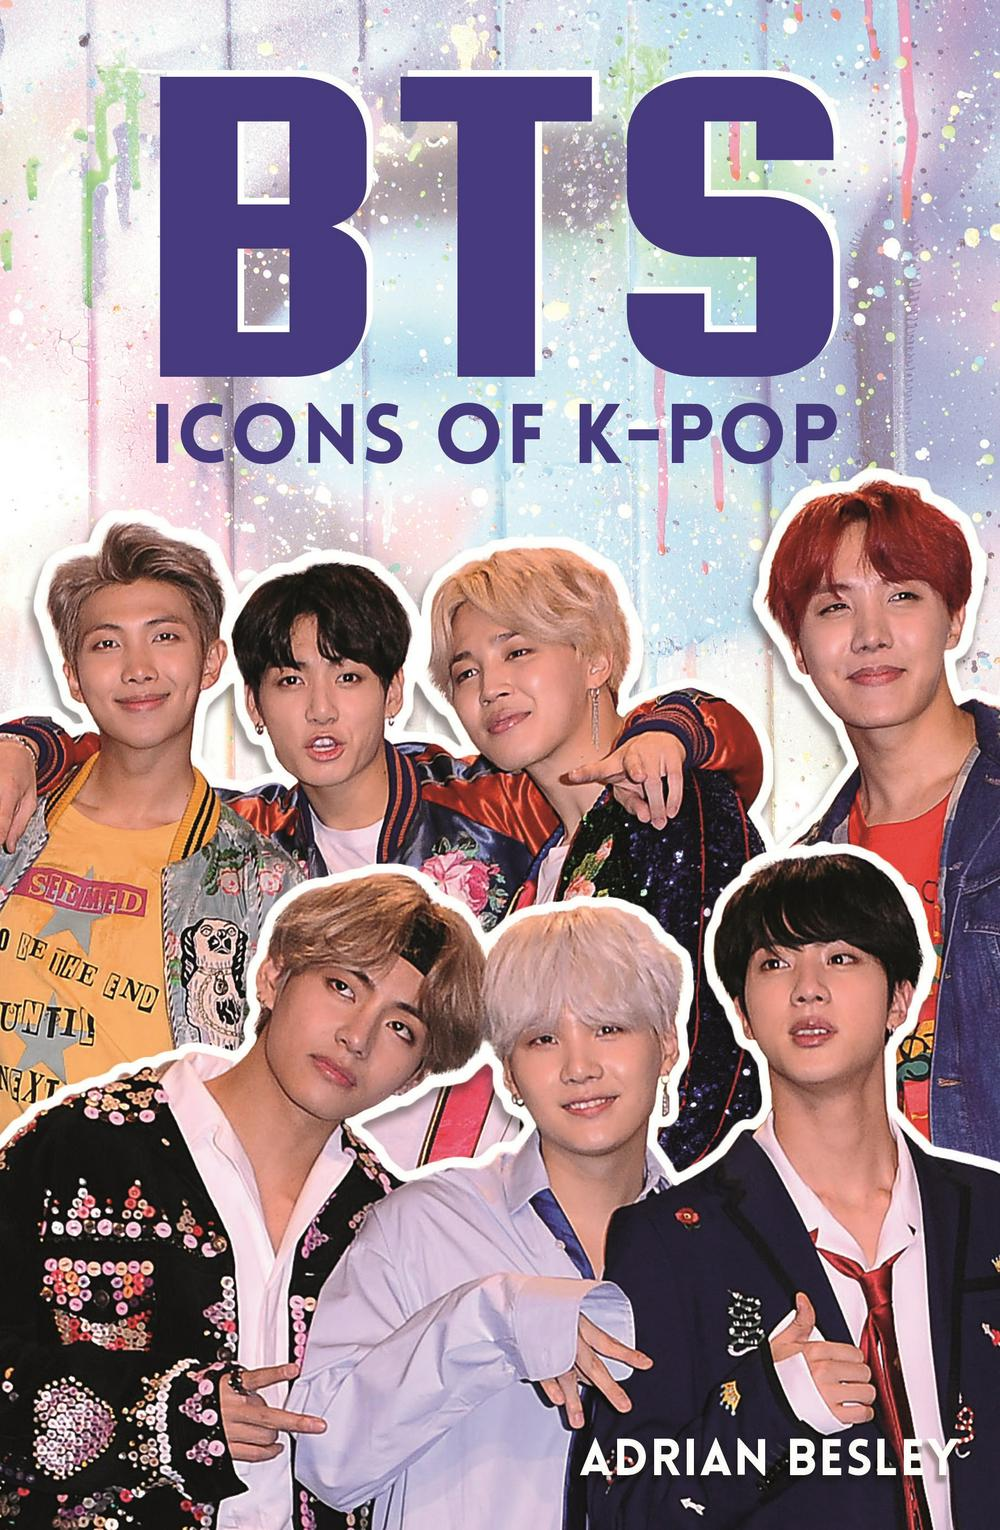 BTSIcons of K-pop by Adrian Besley, ISBN: 9781782439684